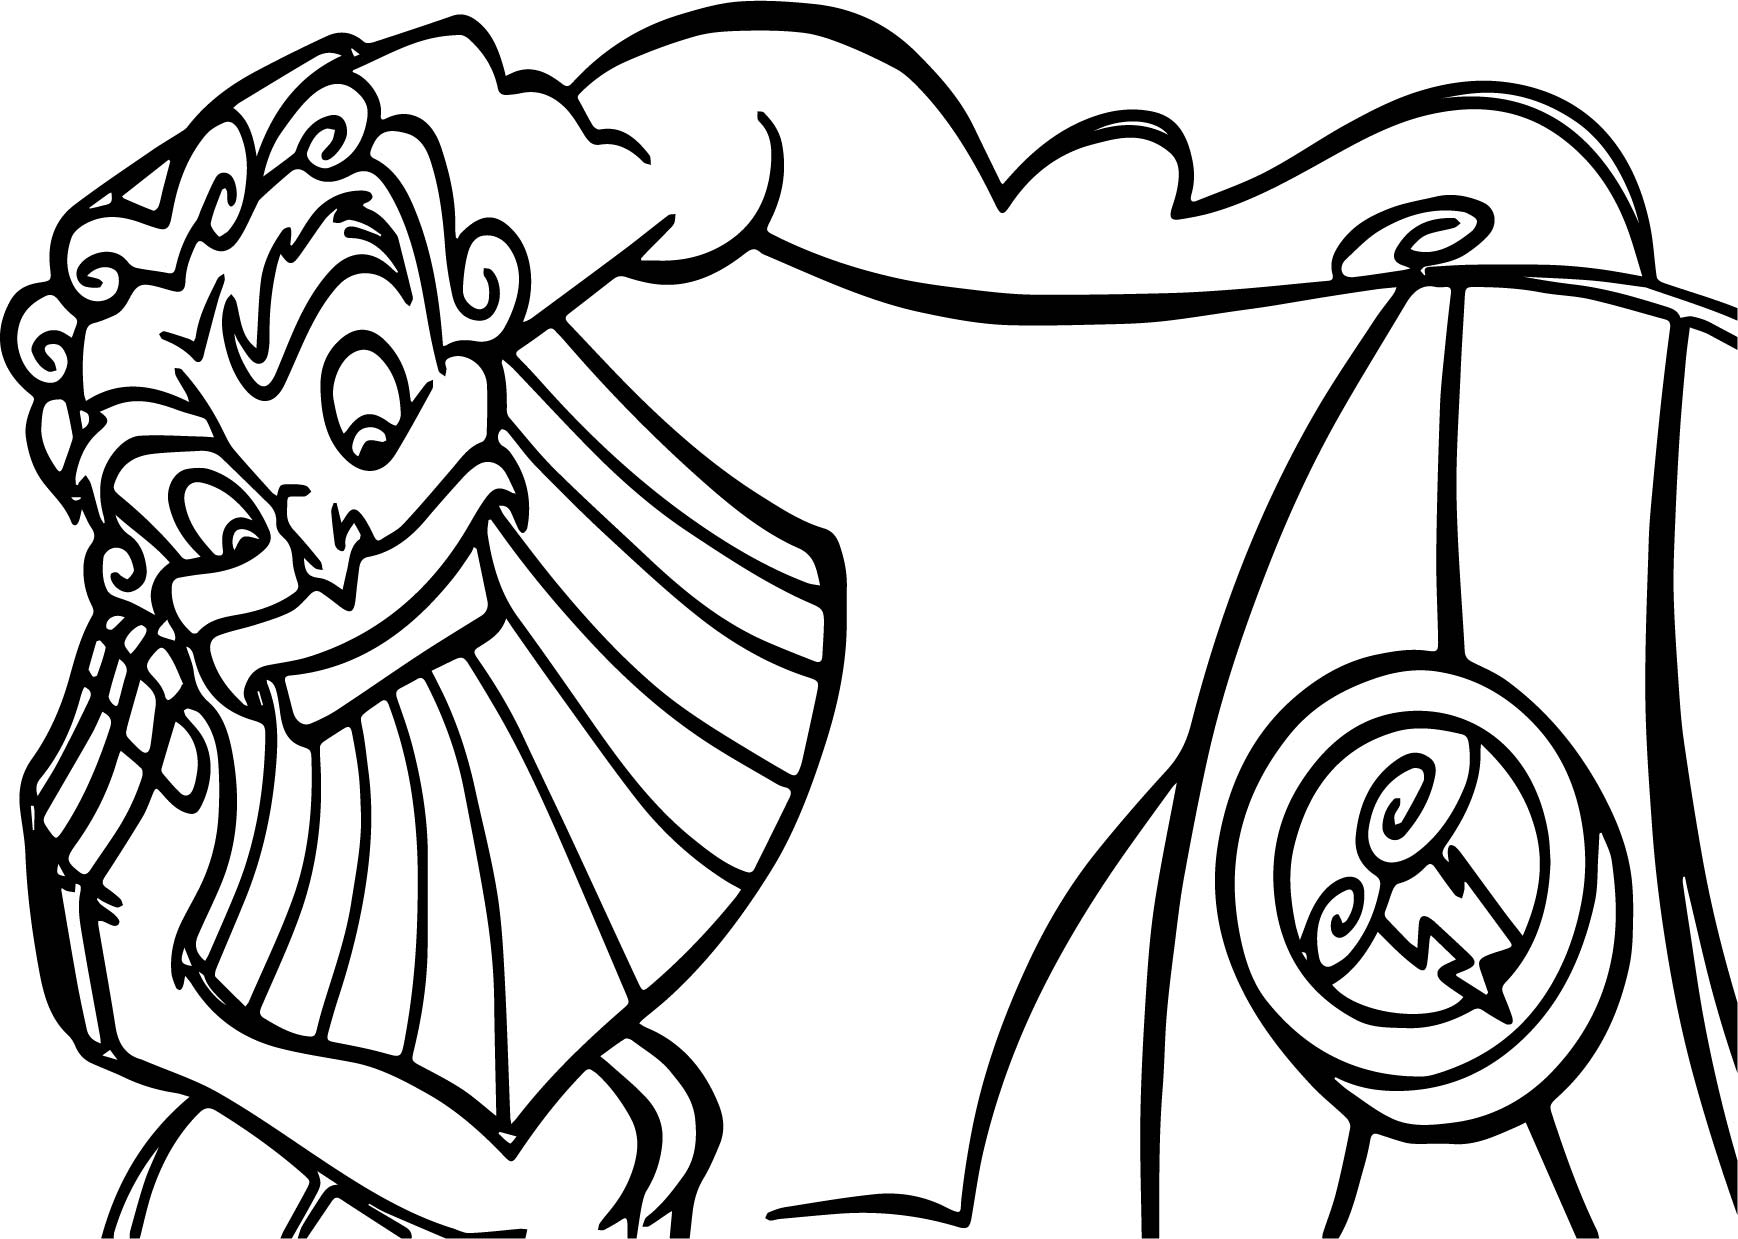 Zeus hercules looking coloring pages for Zeus coloring page